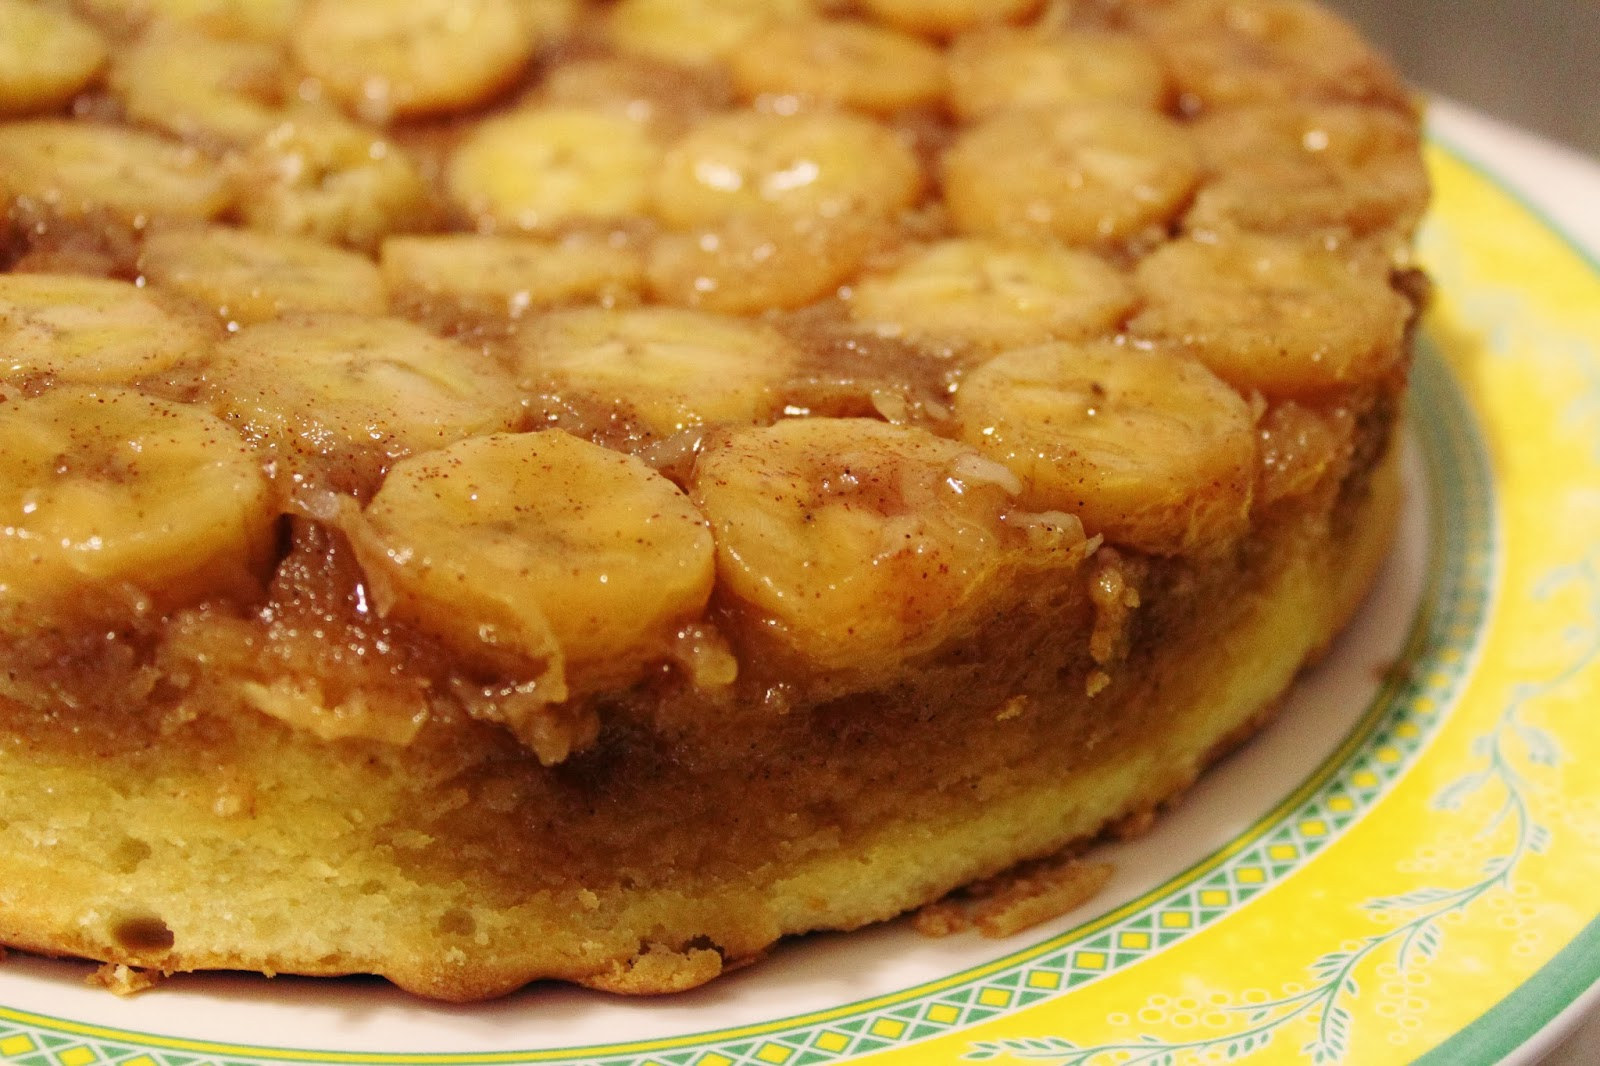 Blog as you Bake: Banana Coconut Upside Down Cake